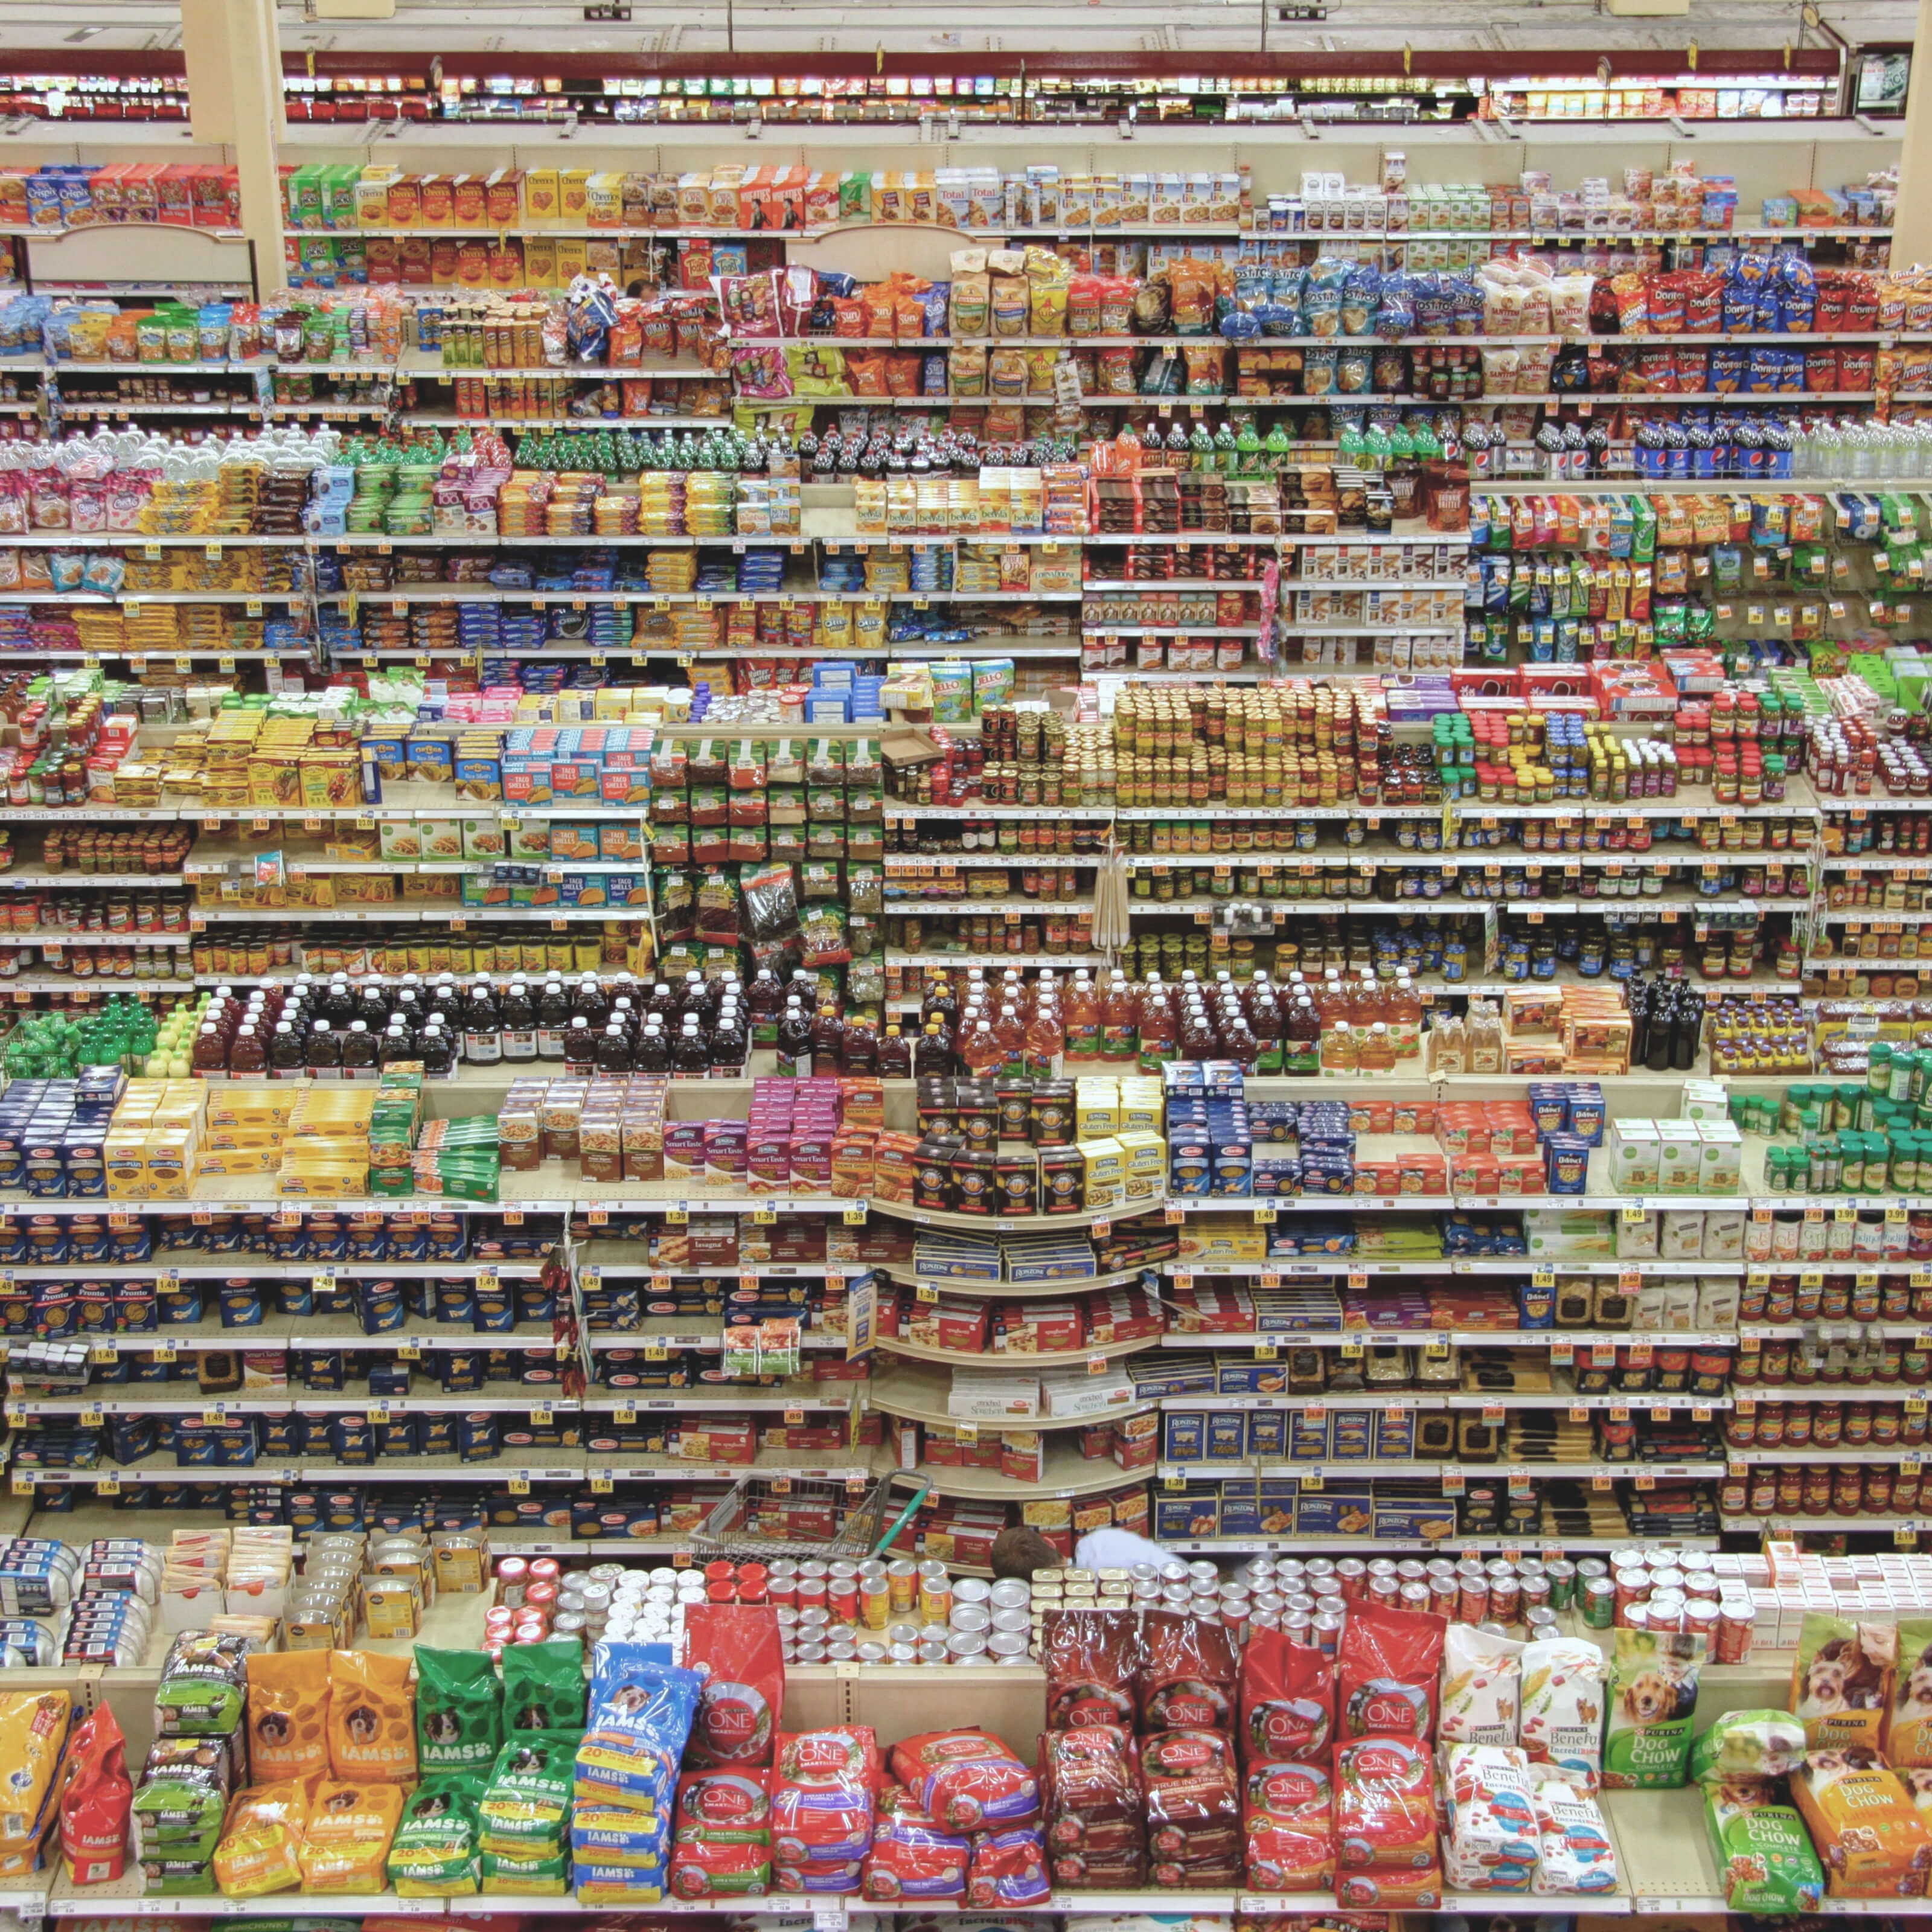 food, products, grocery store shelves